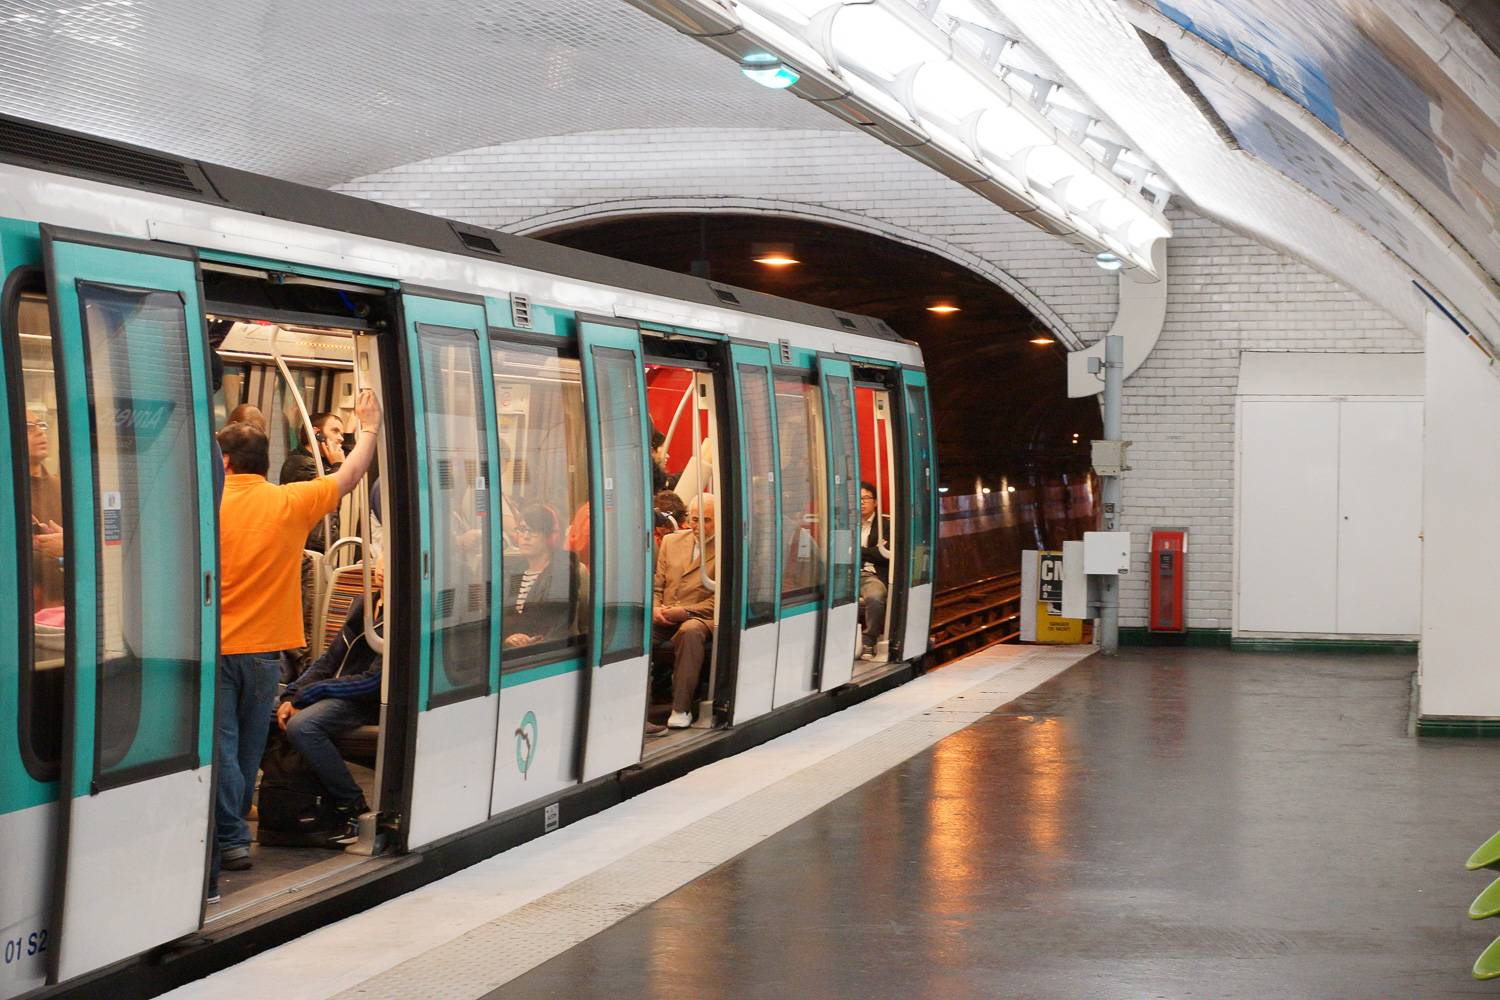 Image of a Métro train sitting in Anvers Station in Paris.